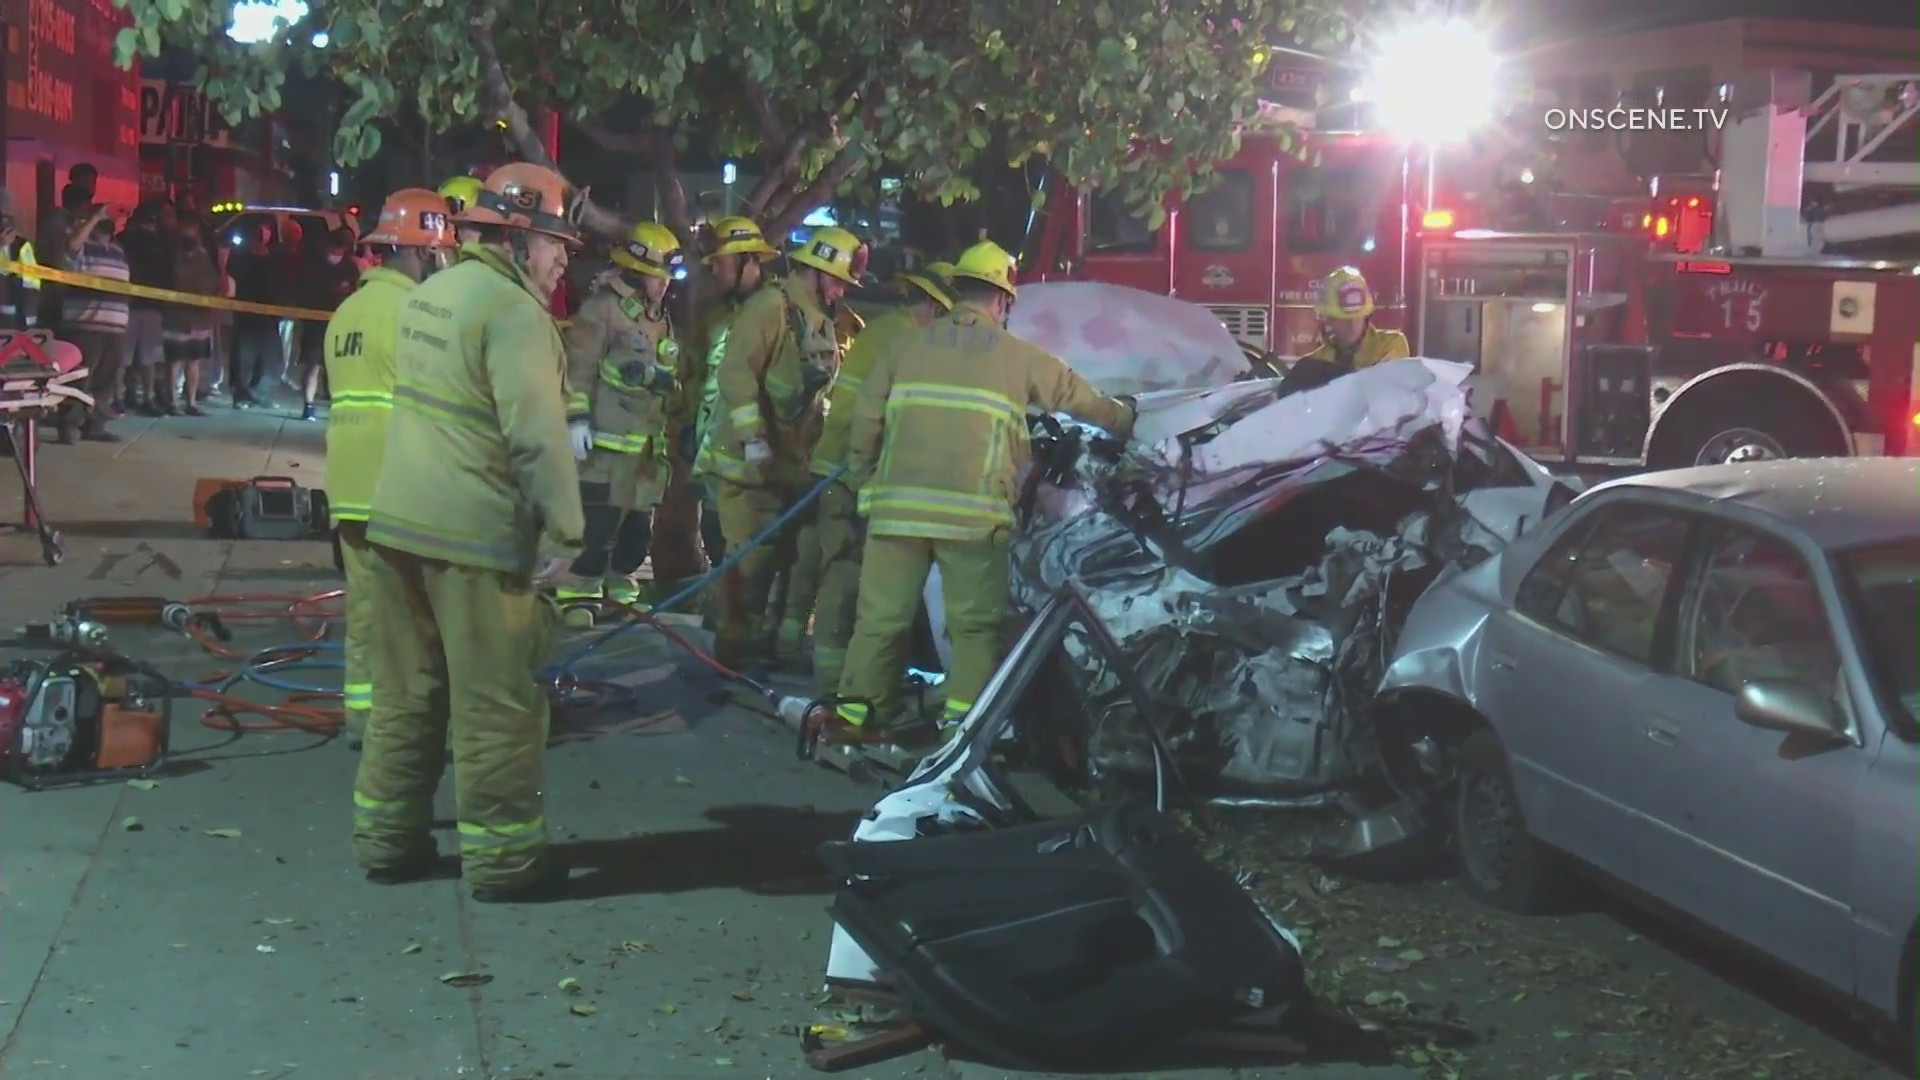 Emergency personnel respond to a fatal crash in South Los Angeles on March 5, 2021. (OnScene.TV)